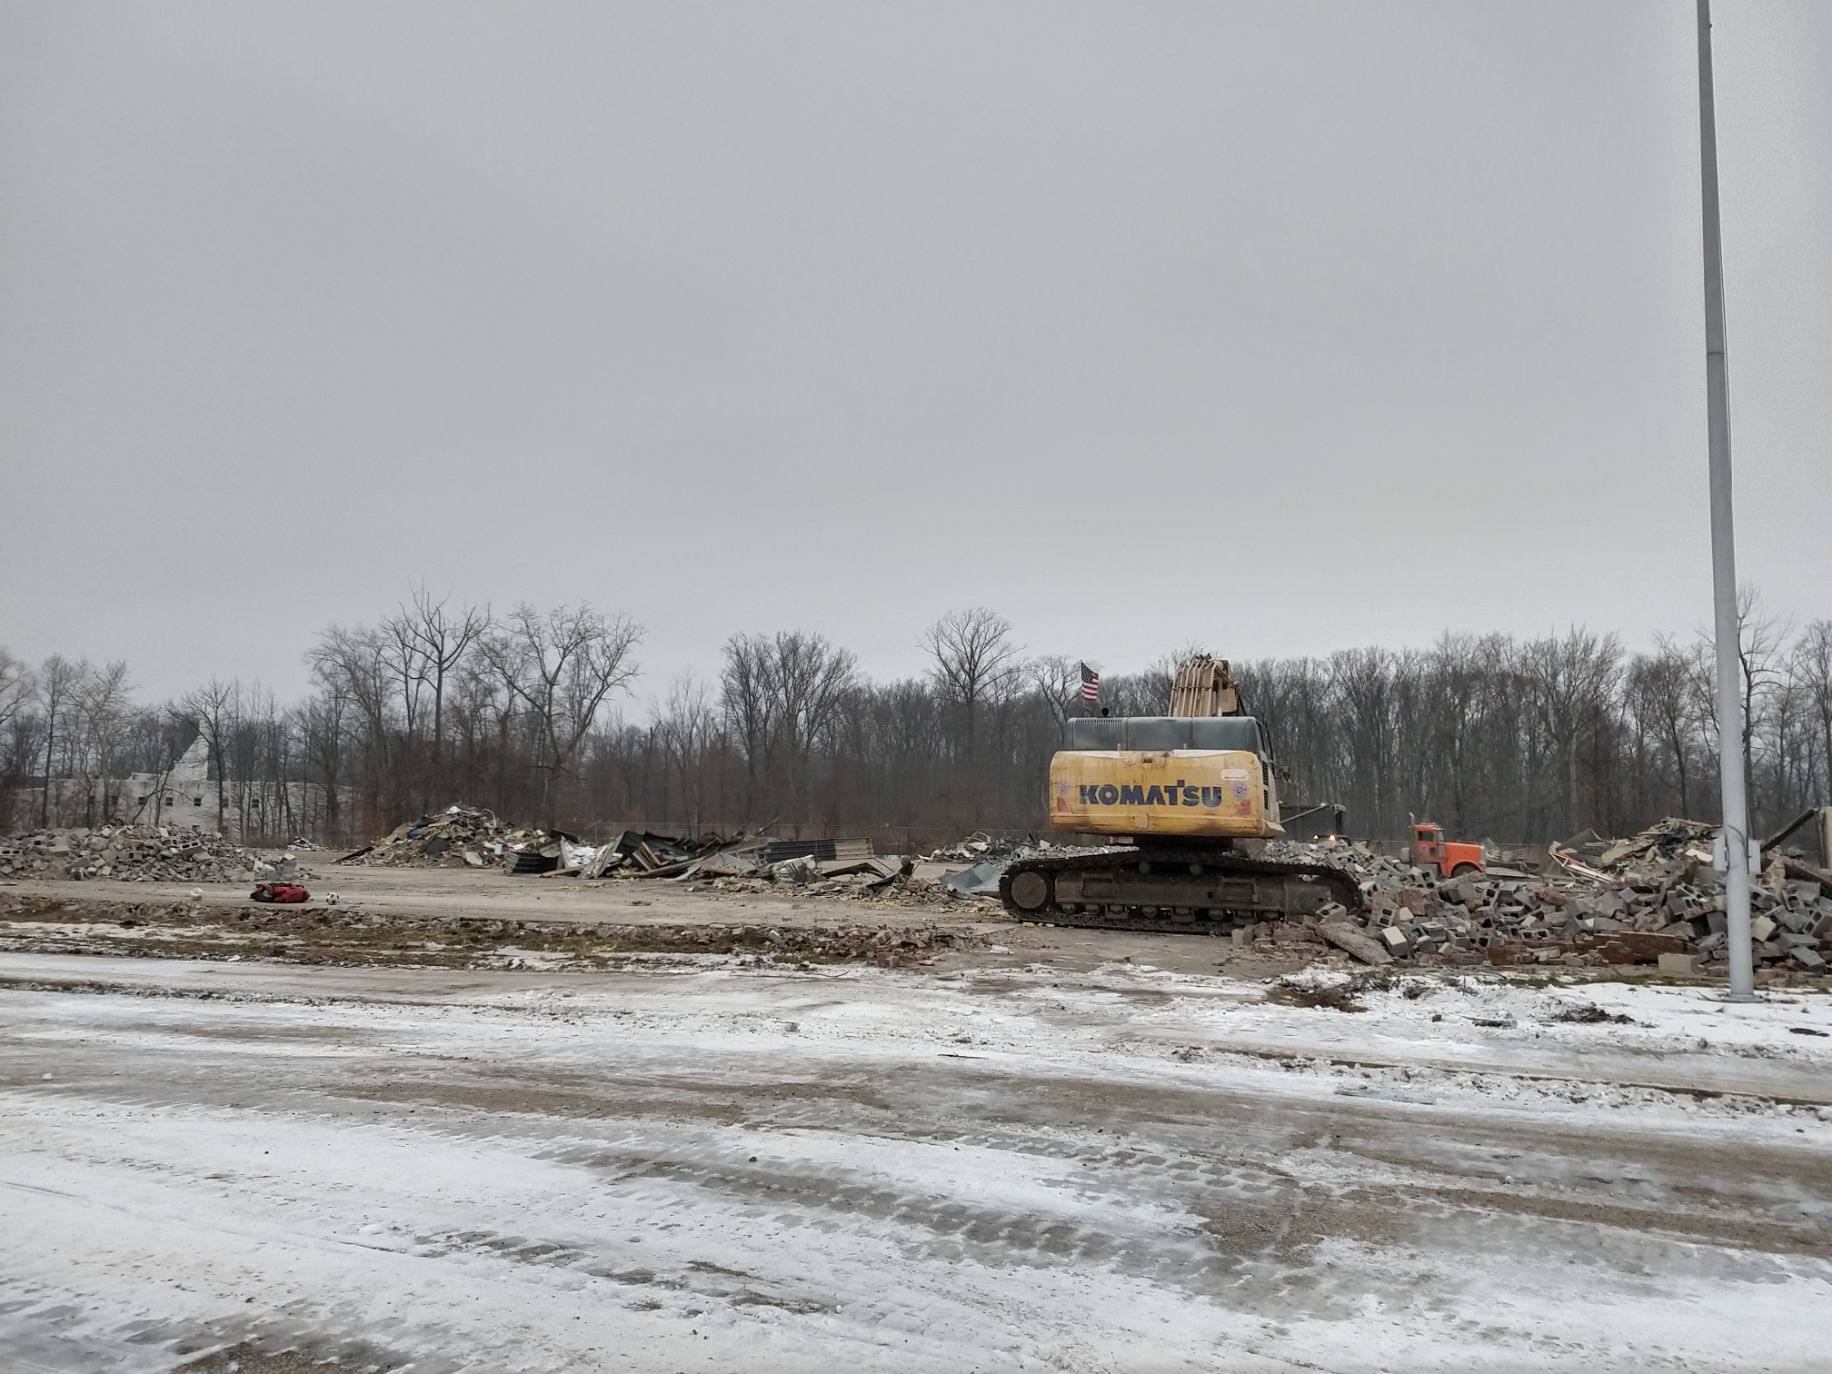 Building is now down